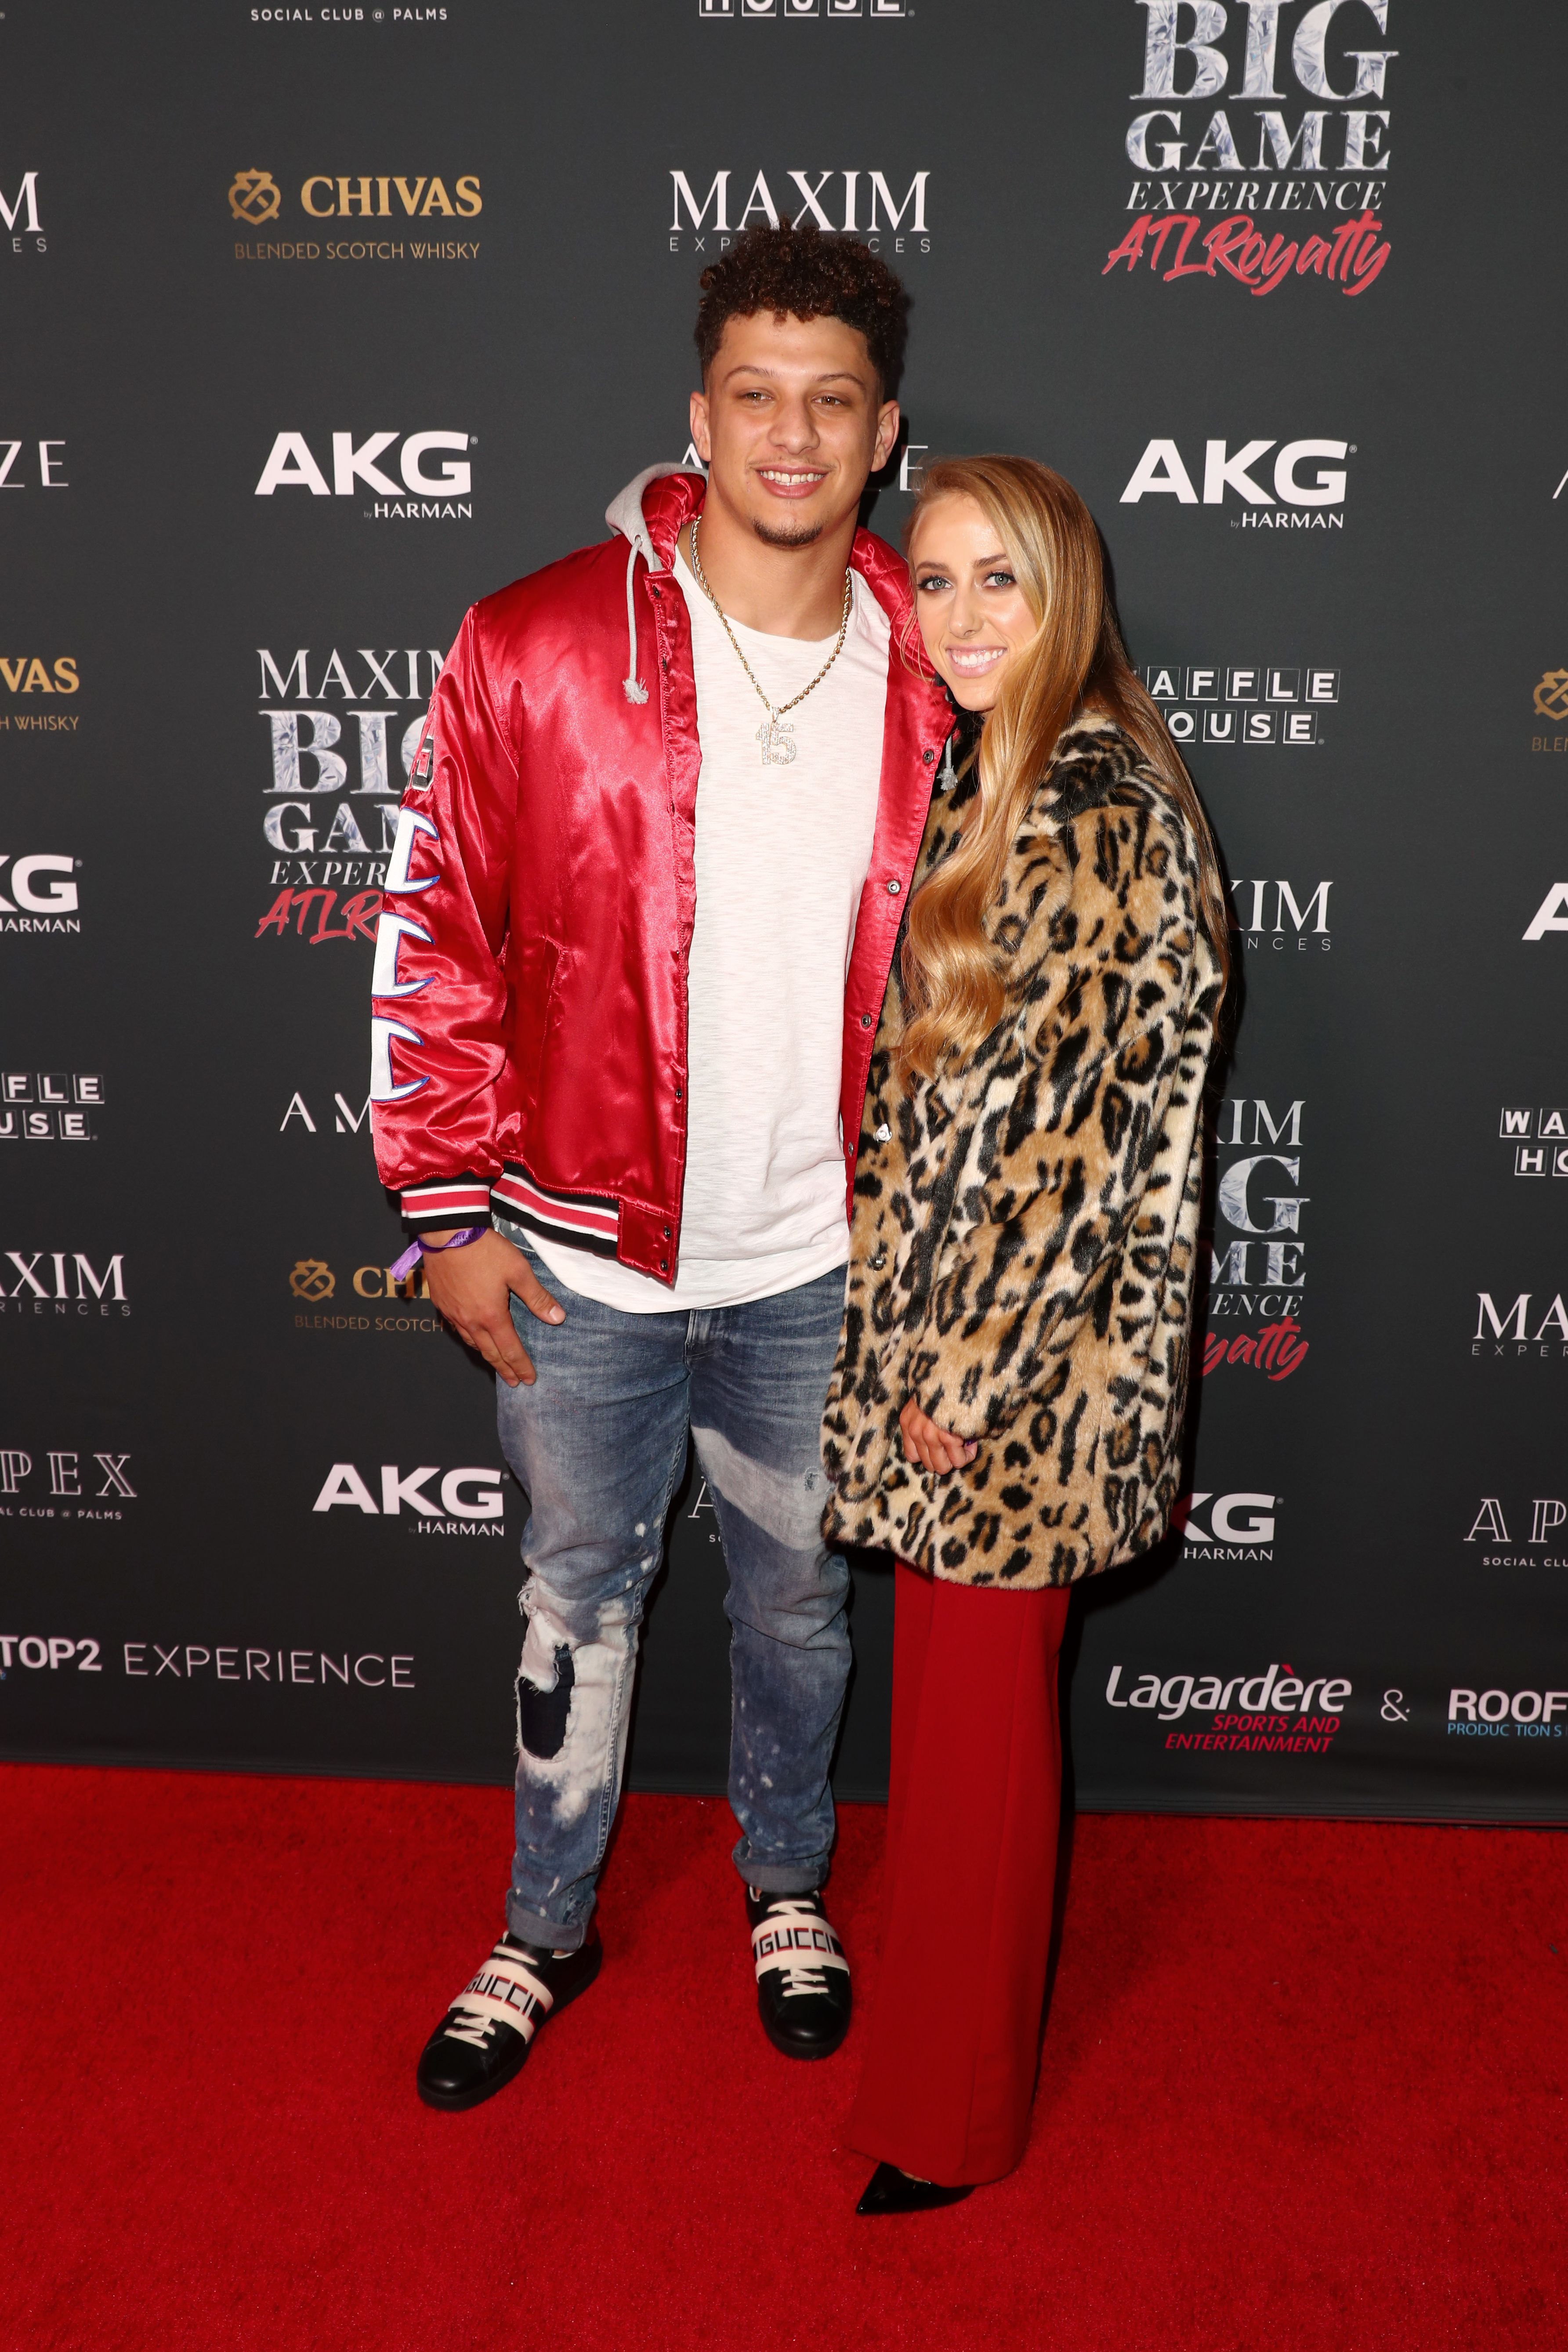 Patrick Mahomes II (L) and Brittany Matthews at The Maxim Big Game Experience on February 02, 2019 | Getty Images